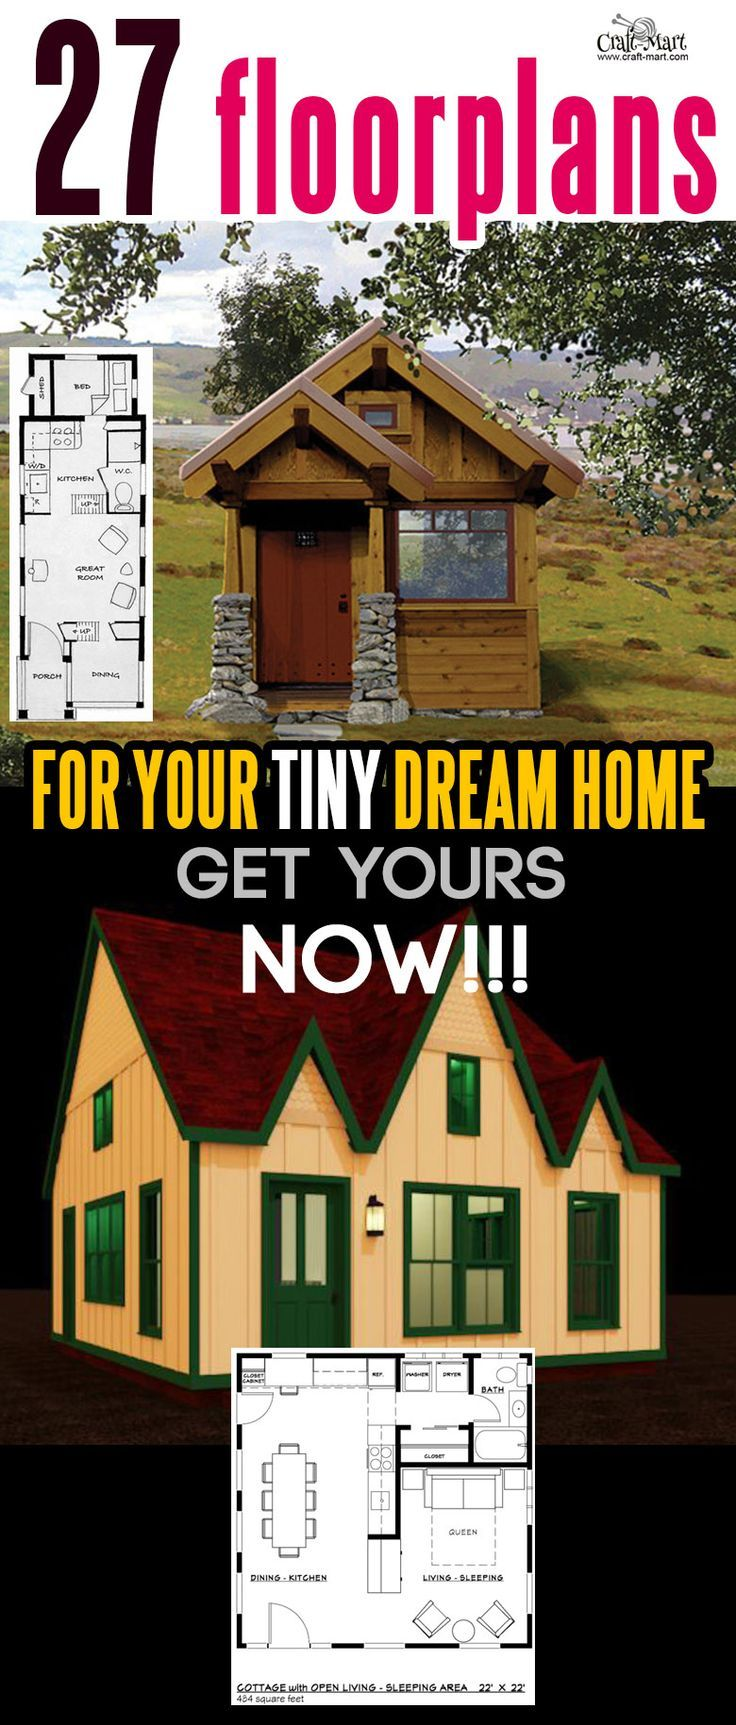 27 Adorable Free Tiny House Floor Plans | Tiny house plans, House ...